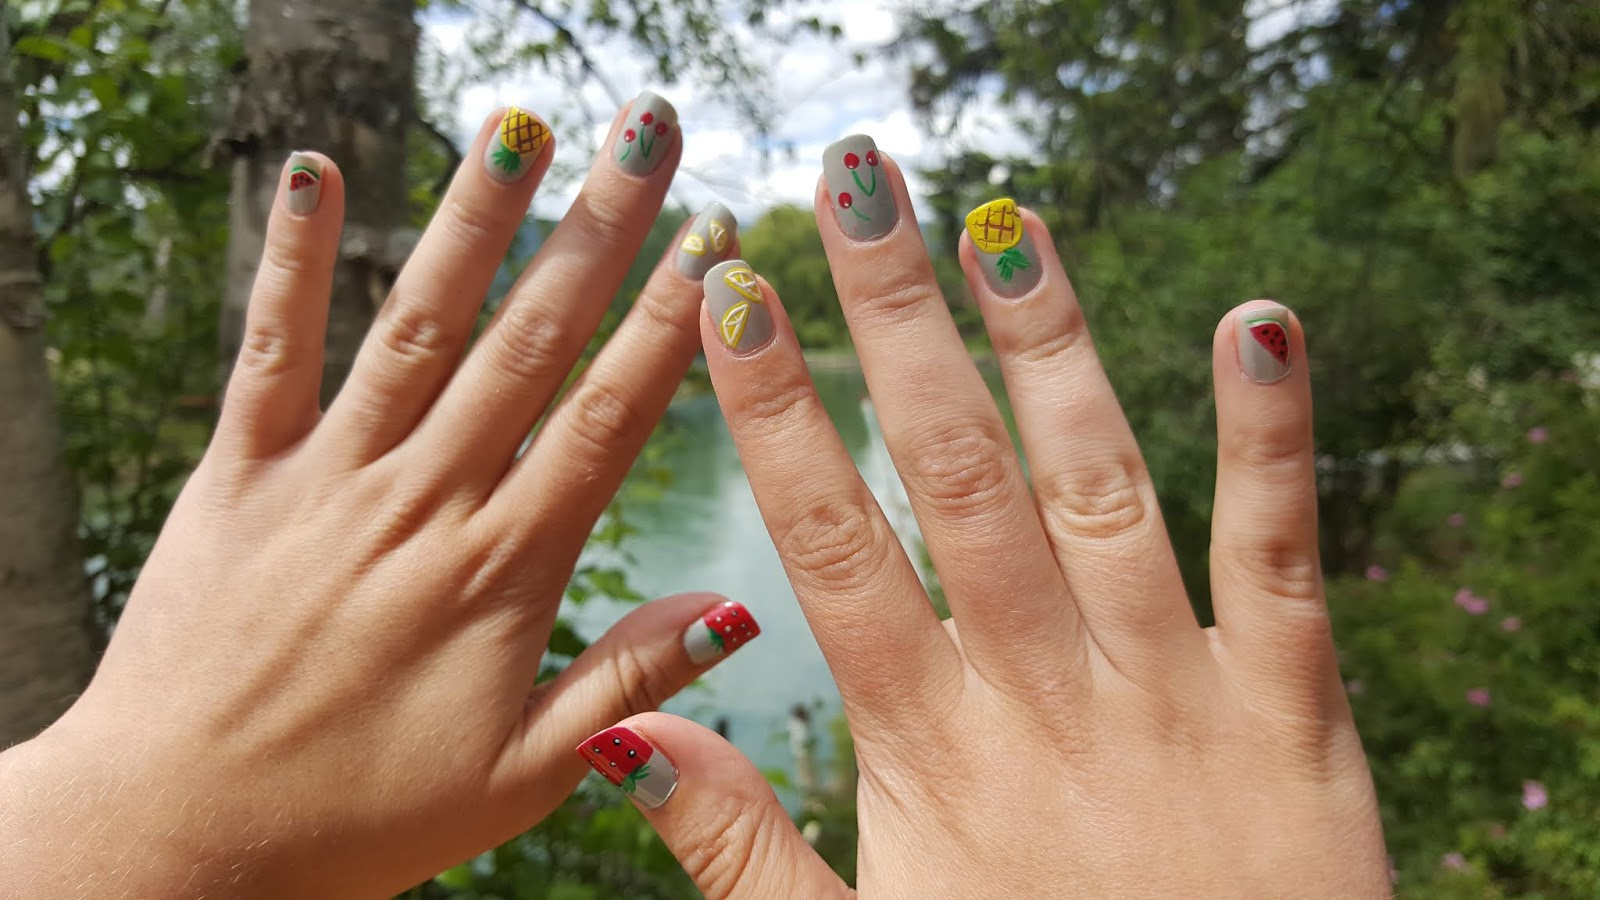 Manicure Monday - Fun and Fruity Summer Nail Art